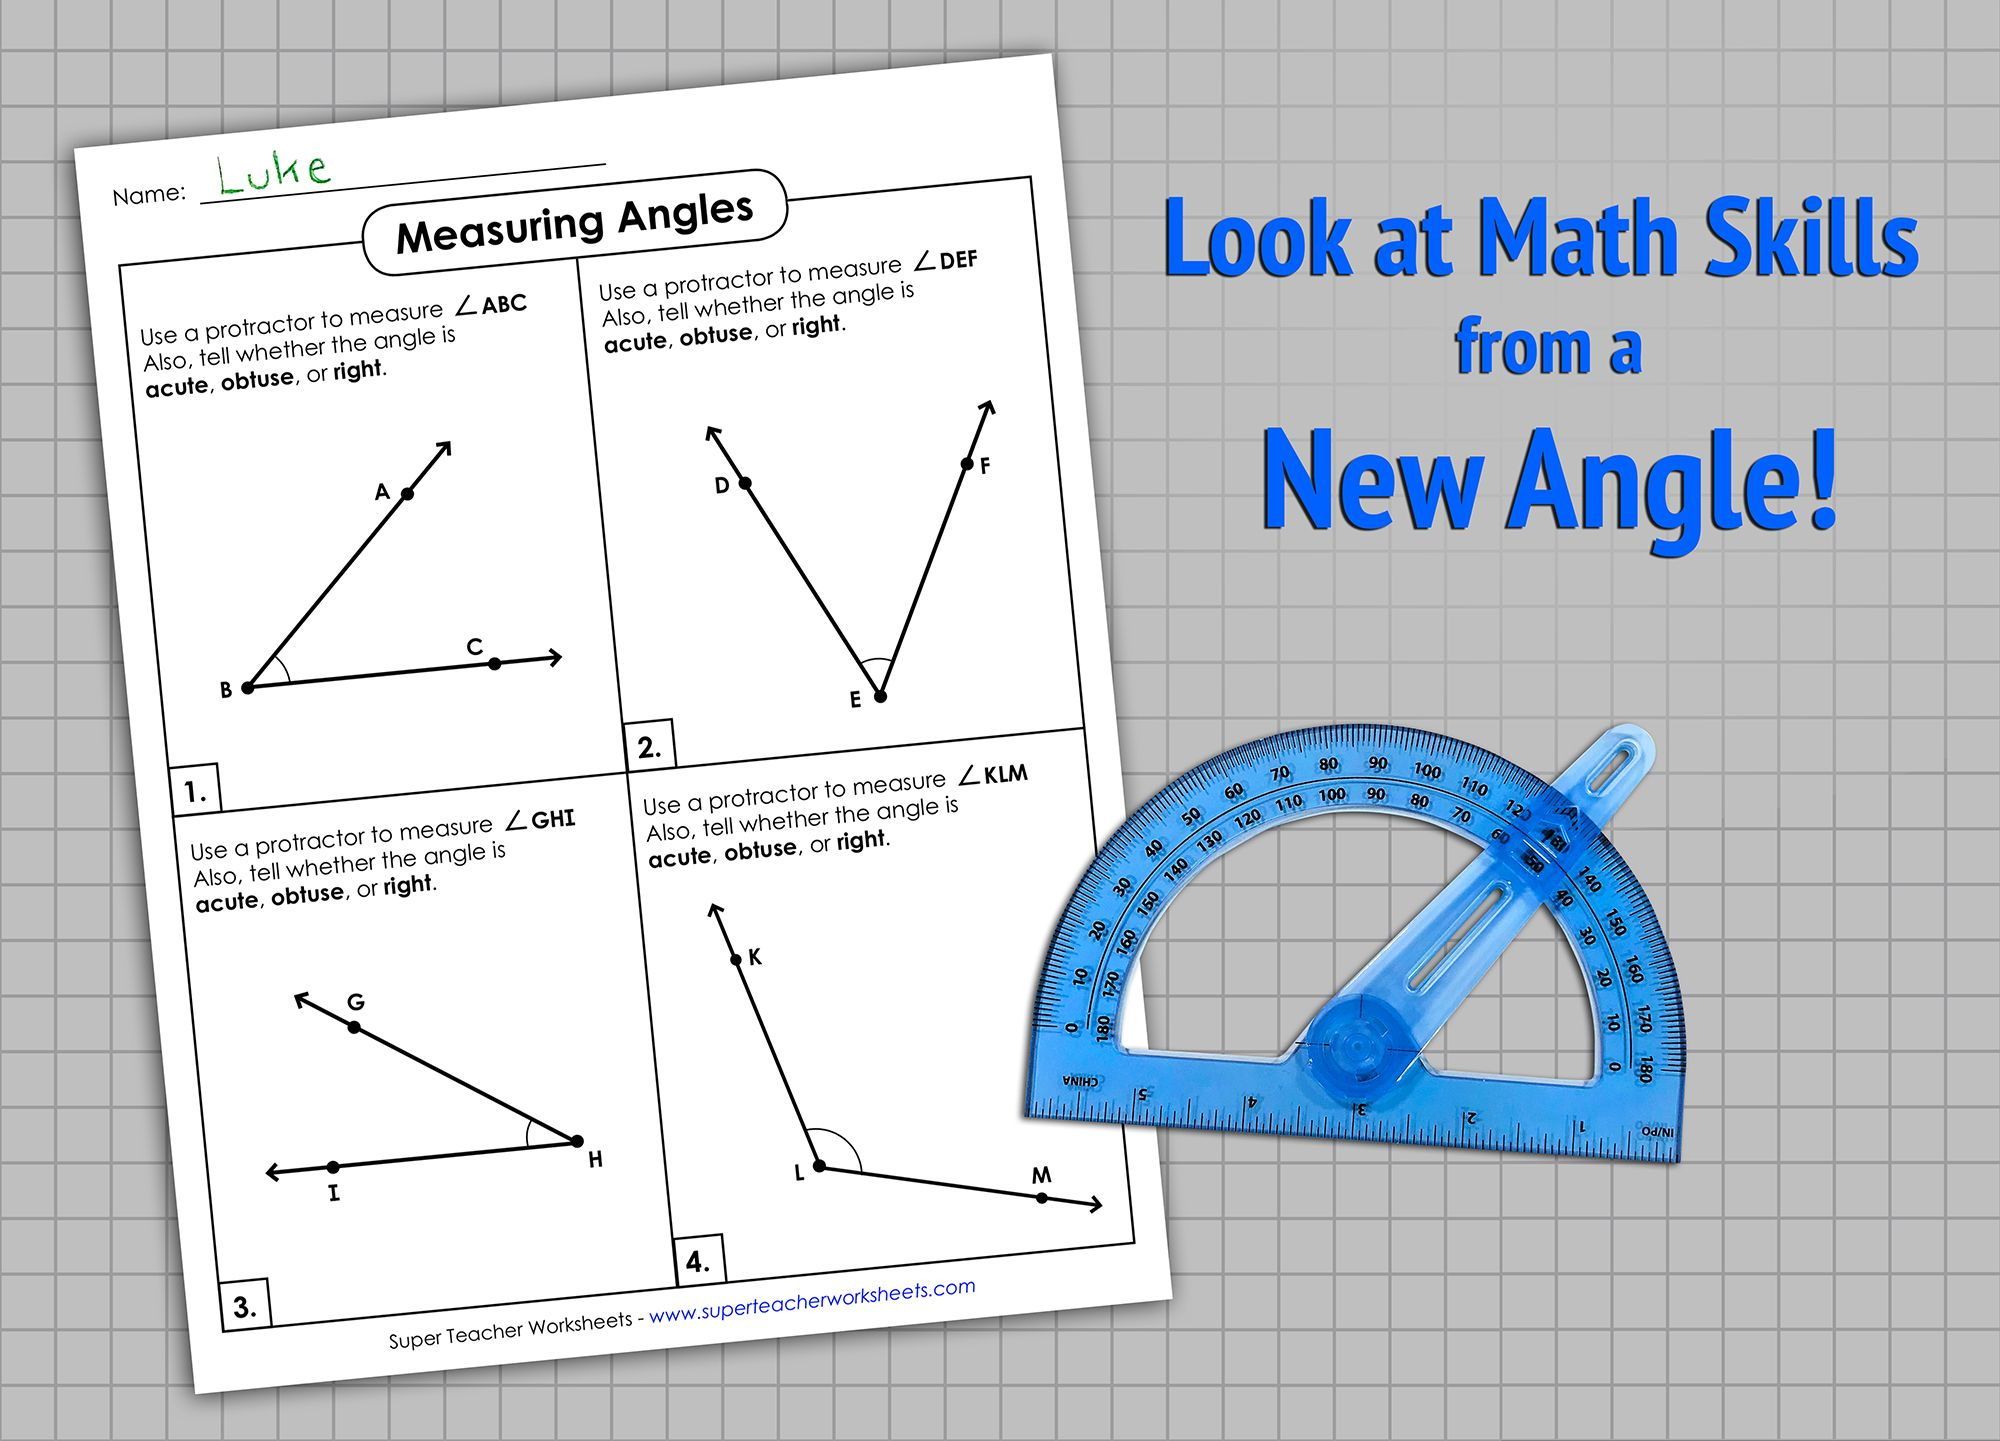 Check Out The Superteacherworksheets Geometry Collection